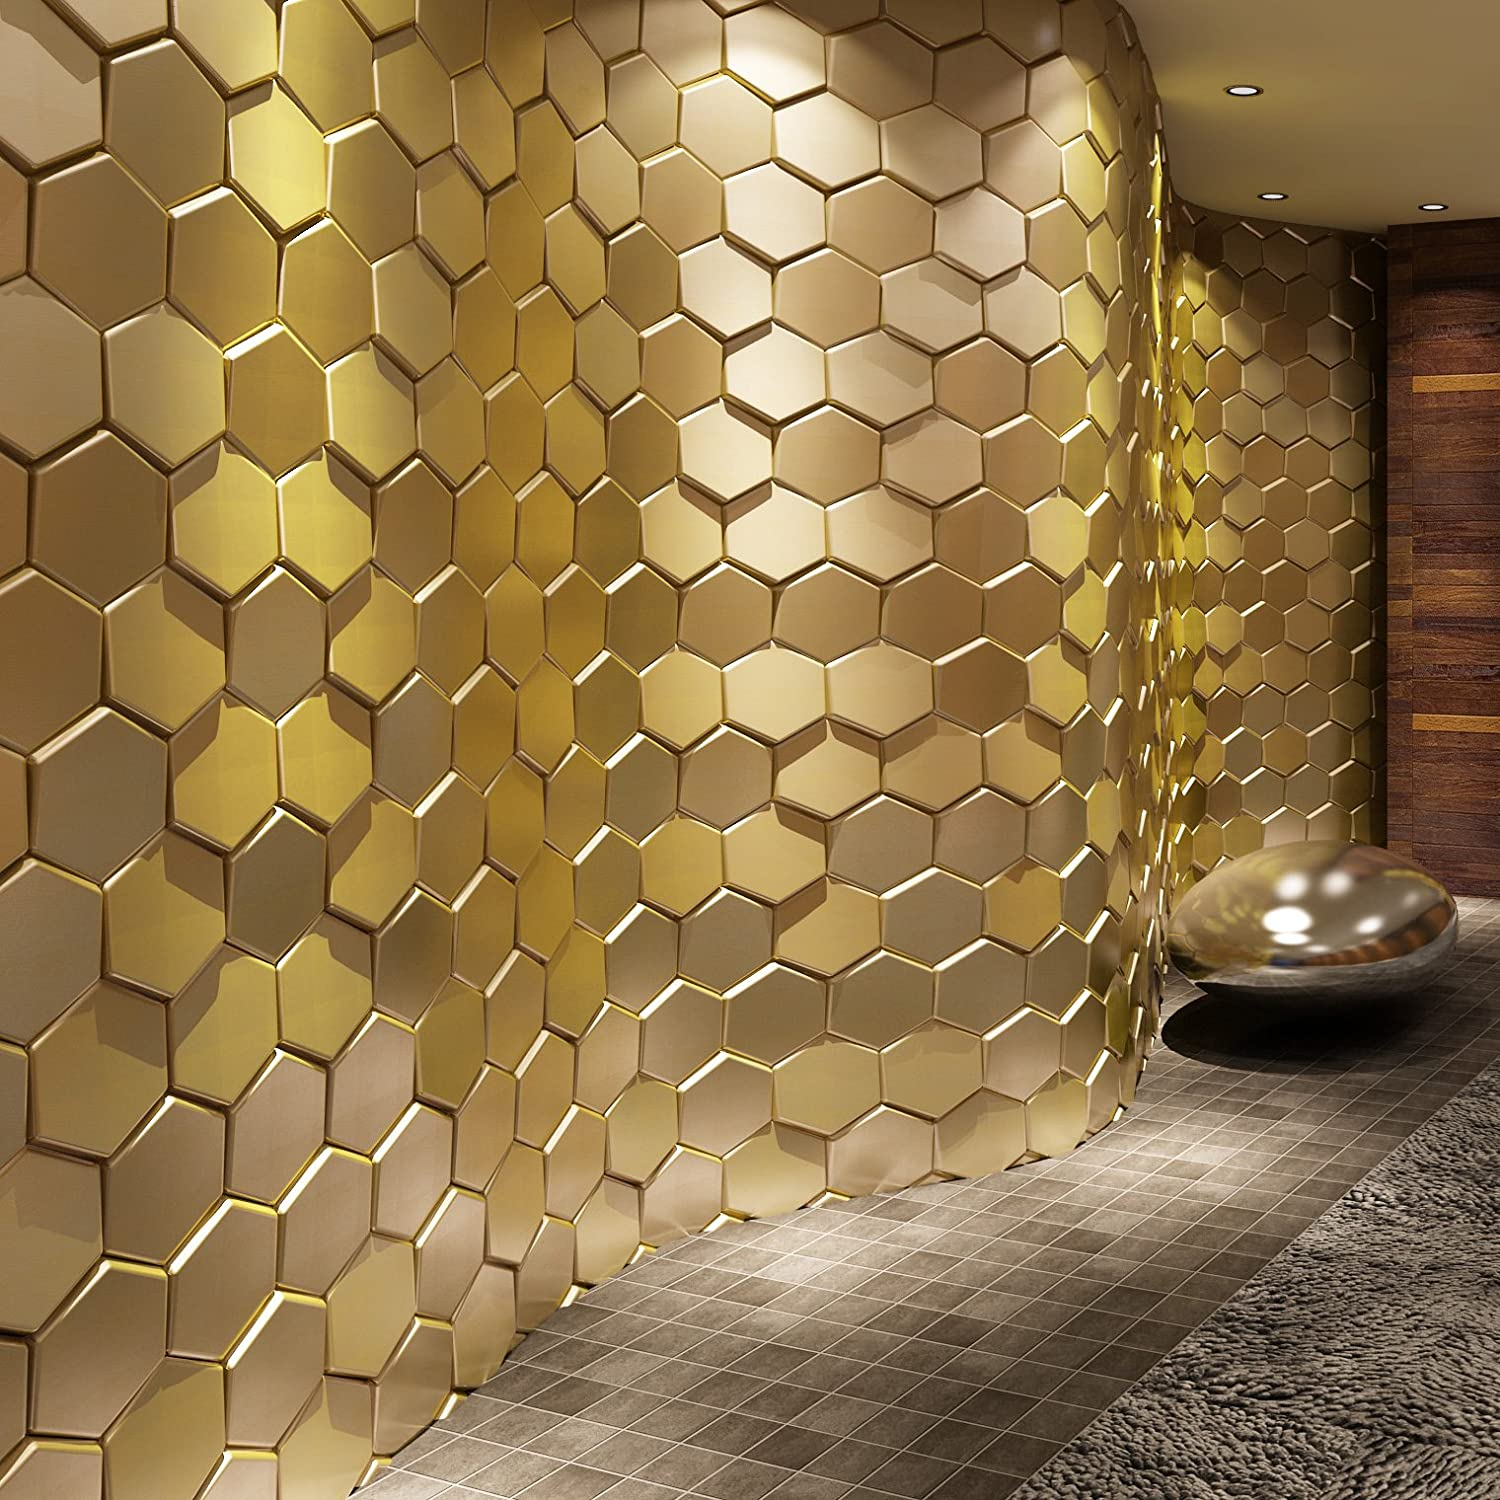 Art3d 20-Pieces Decorative 3D Wall Panel Faux Leather Tile, Golden Hexagon